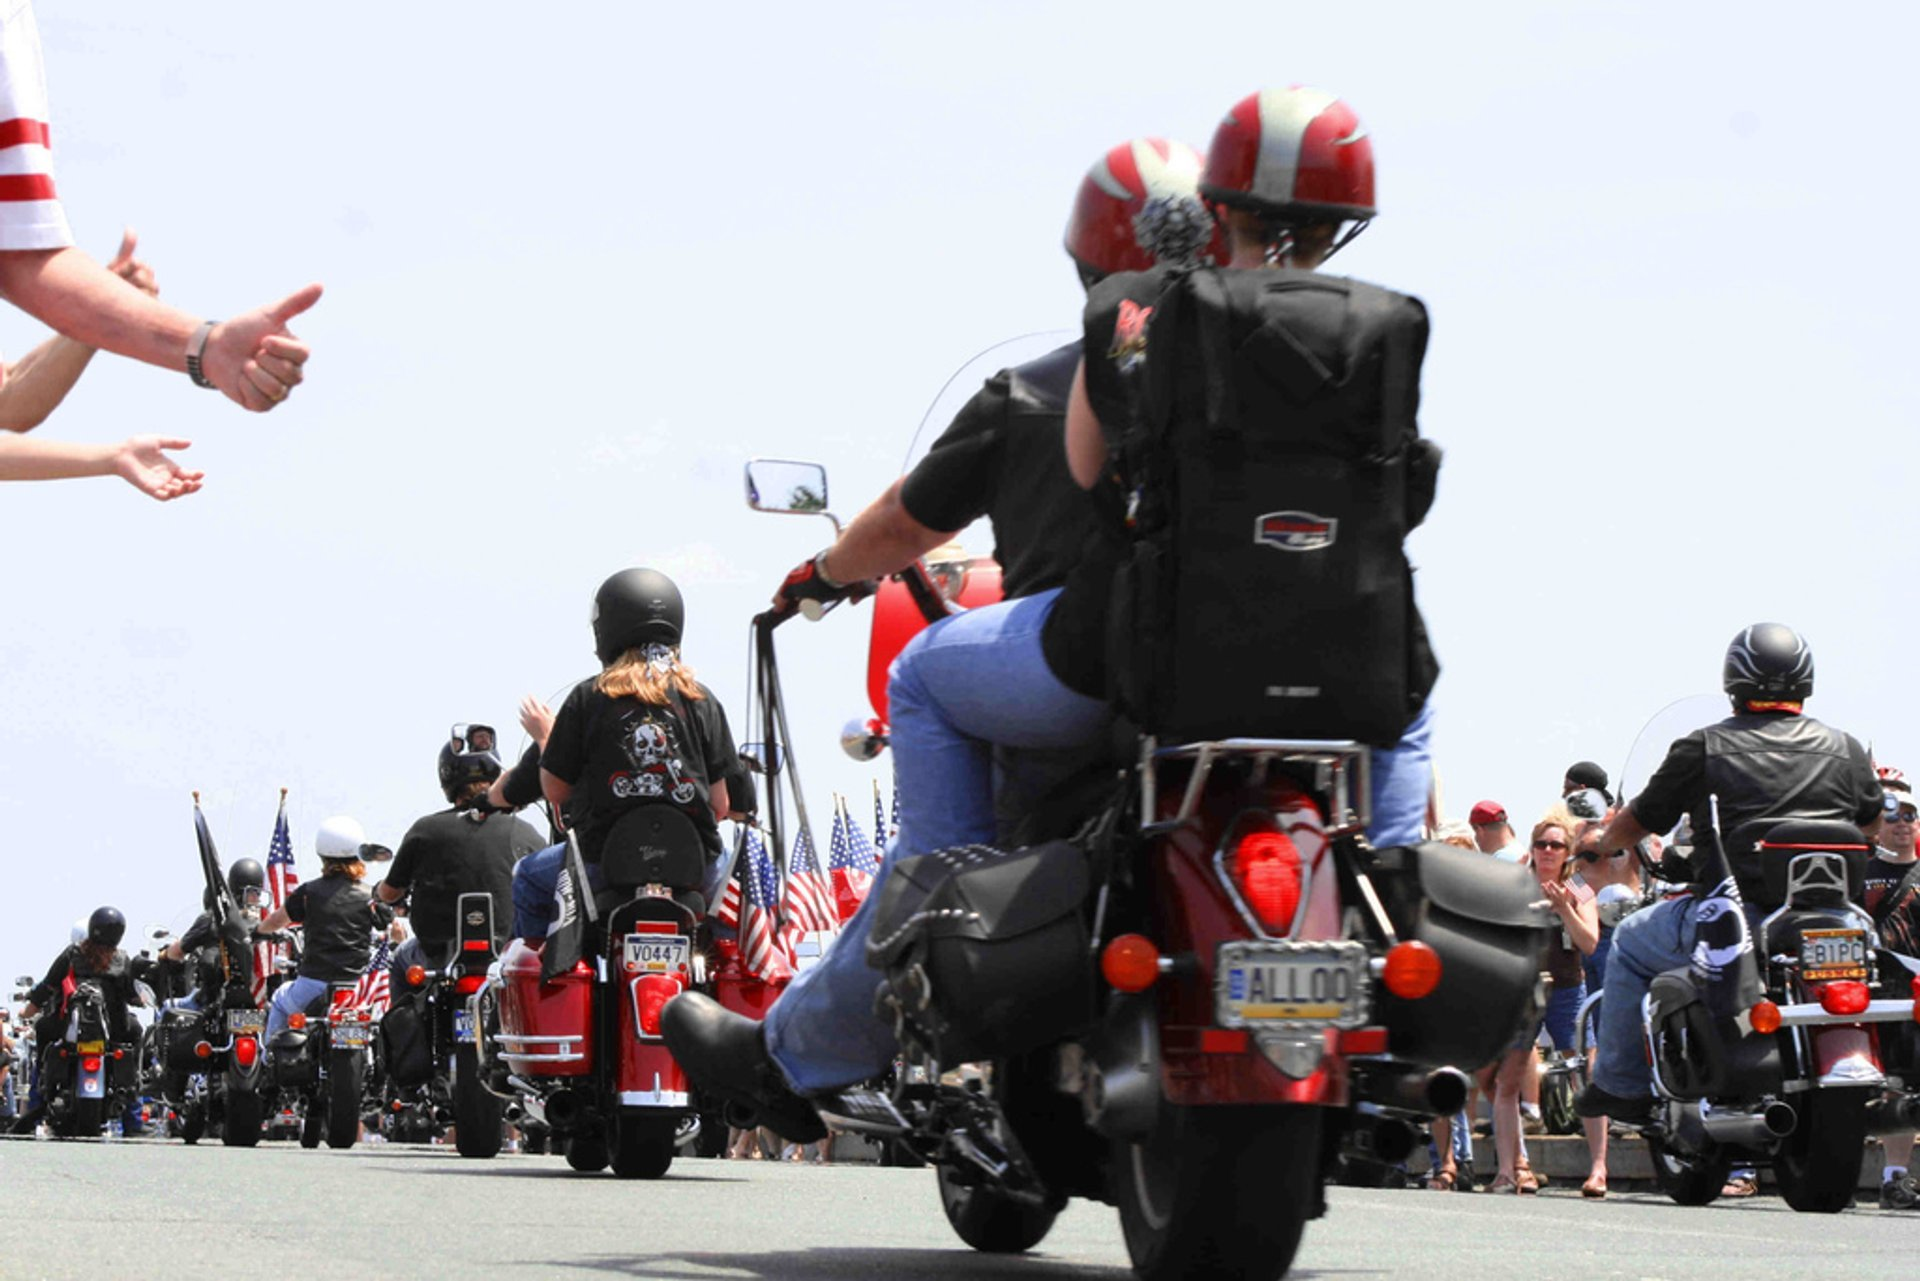 Best time to see Rolling Thunder 'Ride for Freedom' in Washington, D.C. 2019